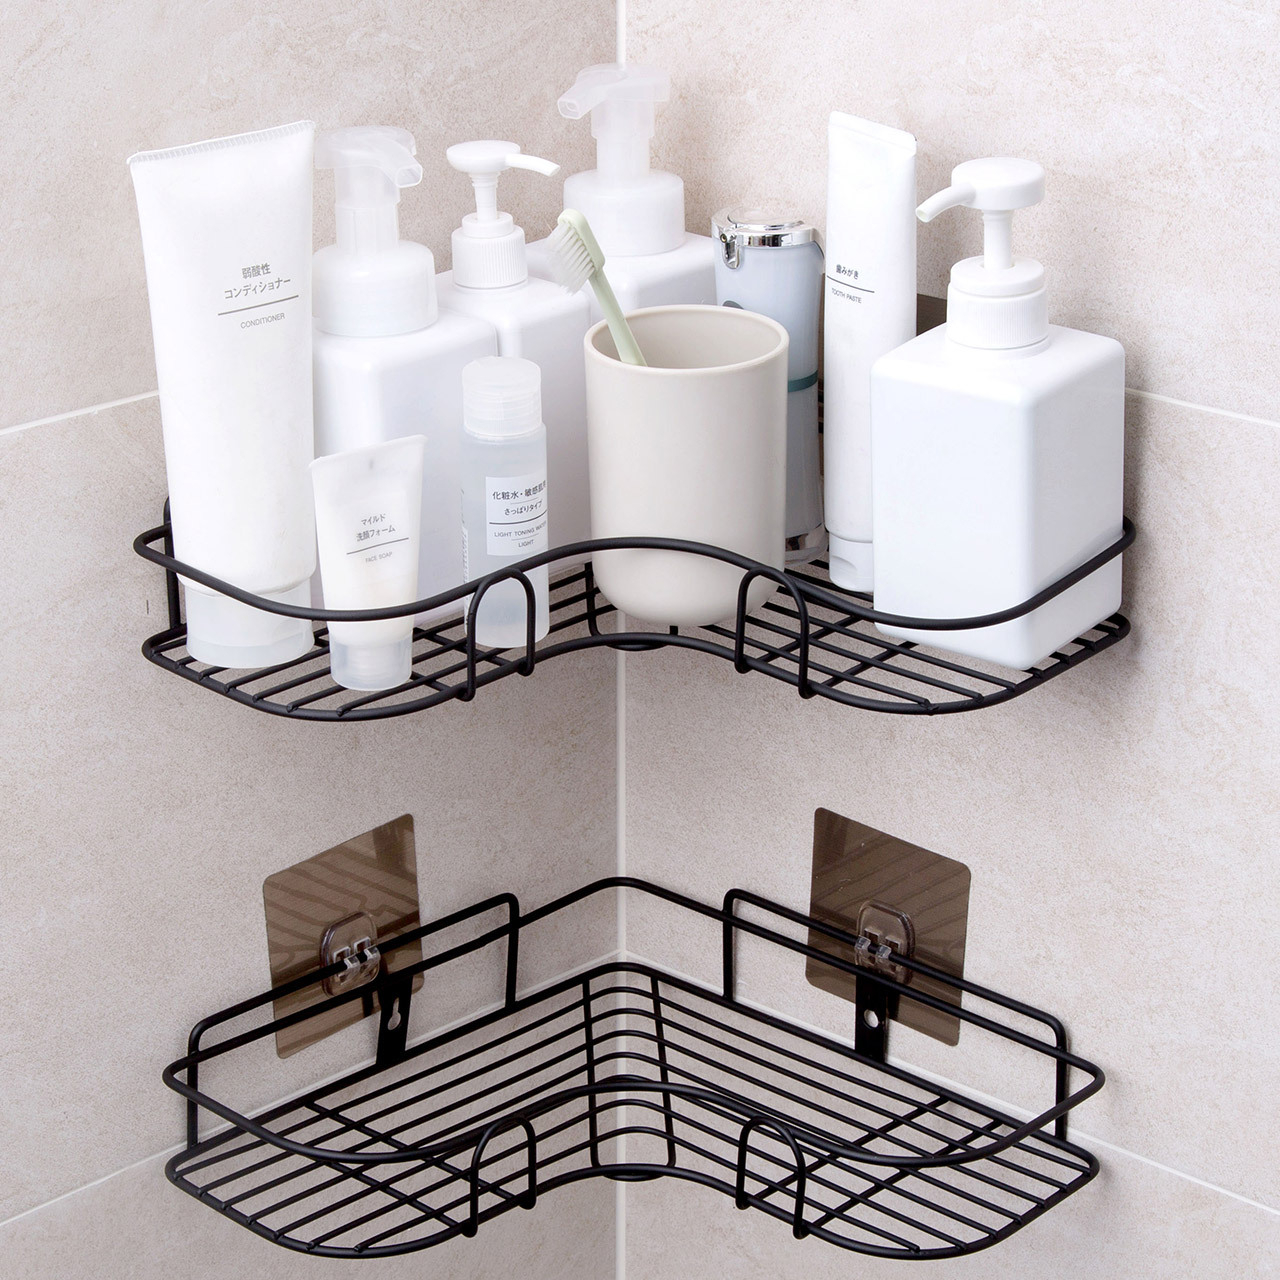 Bathroom Accessories Punch Free Corner Bathroom Shelf Bathroom Fixtures Wrought Iron Storage Rack Kitchen Tripod Wall Shelf Xnc Bathroom Accessories Sets Aliexpress